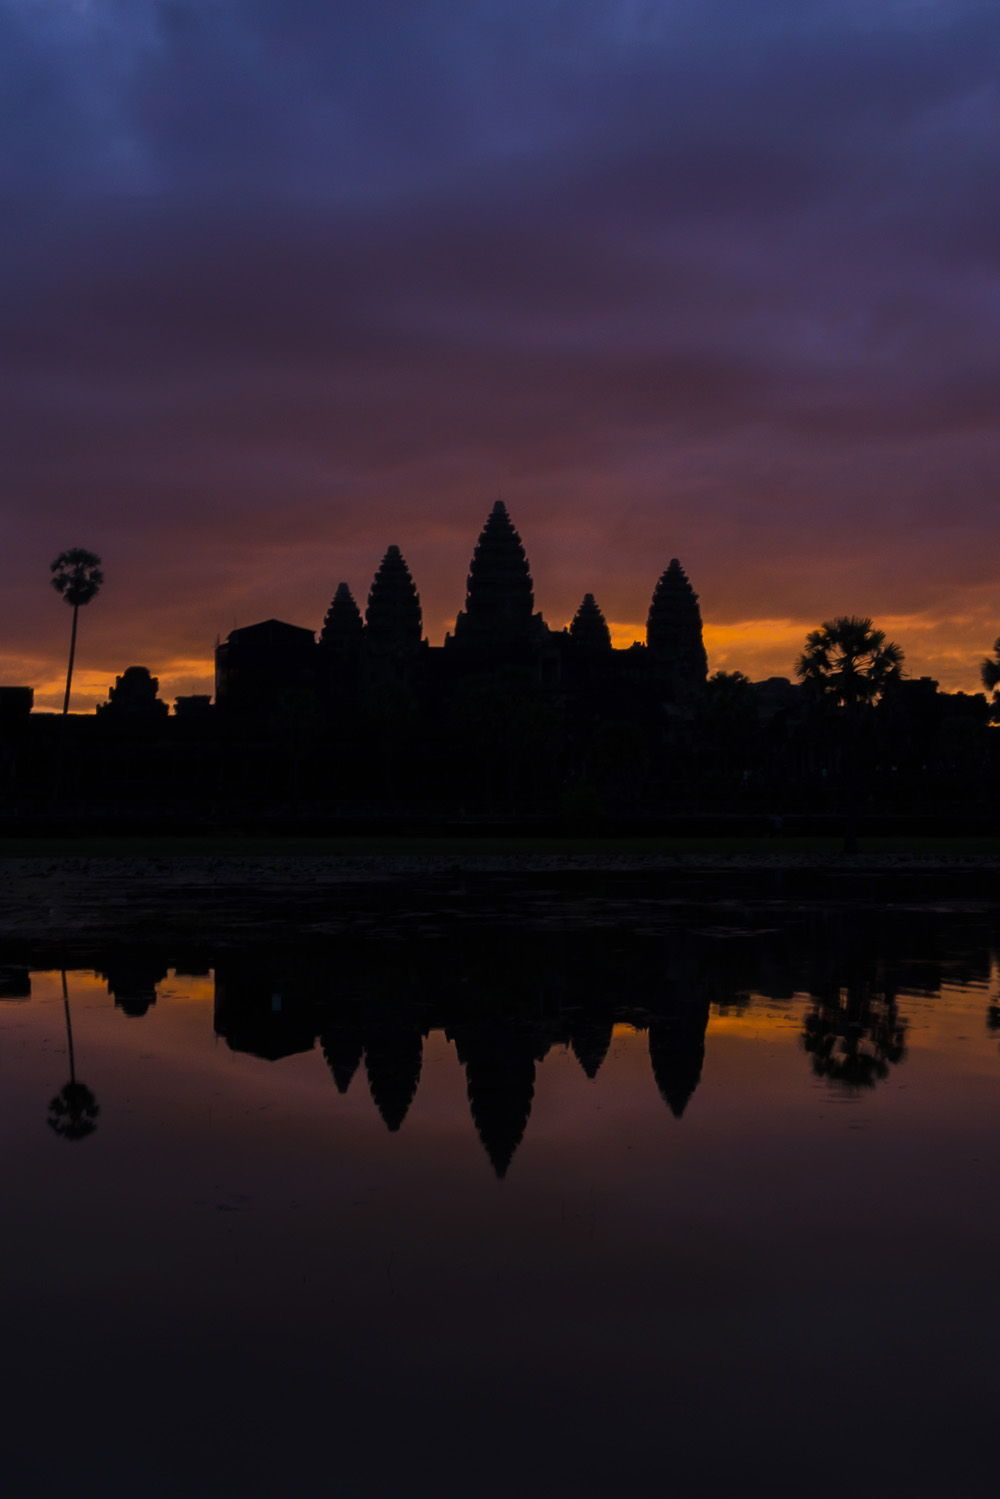 Get up super early to catch the sunrise over Angkor Wat in Seim reap in Cambodia. Then later in the day go to watch the sunset over the worlds largest temple. #photos #photography #photographs #beautiful #travel #aesthetic #Asia #Temple #Sunrise #sunset #Angkorwat #art #Siemreap #kmerart #ankorwatt #ancient #Cambodia